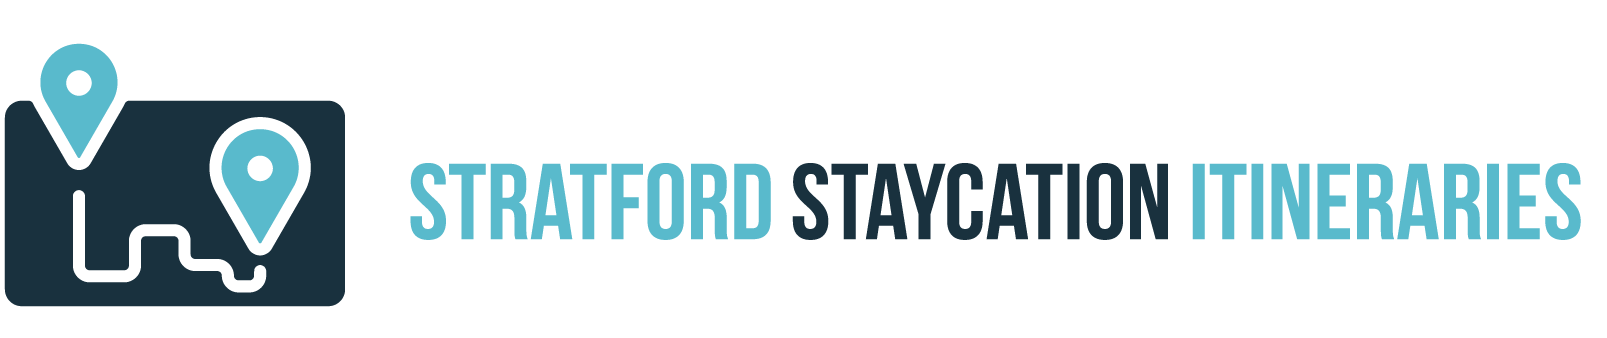 Stratford Staycation Itineraries